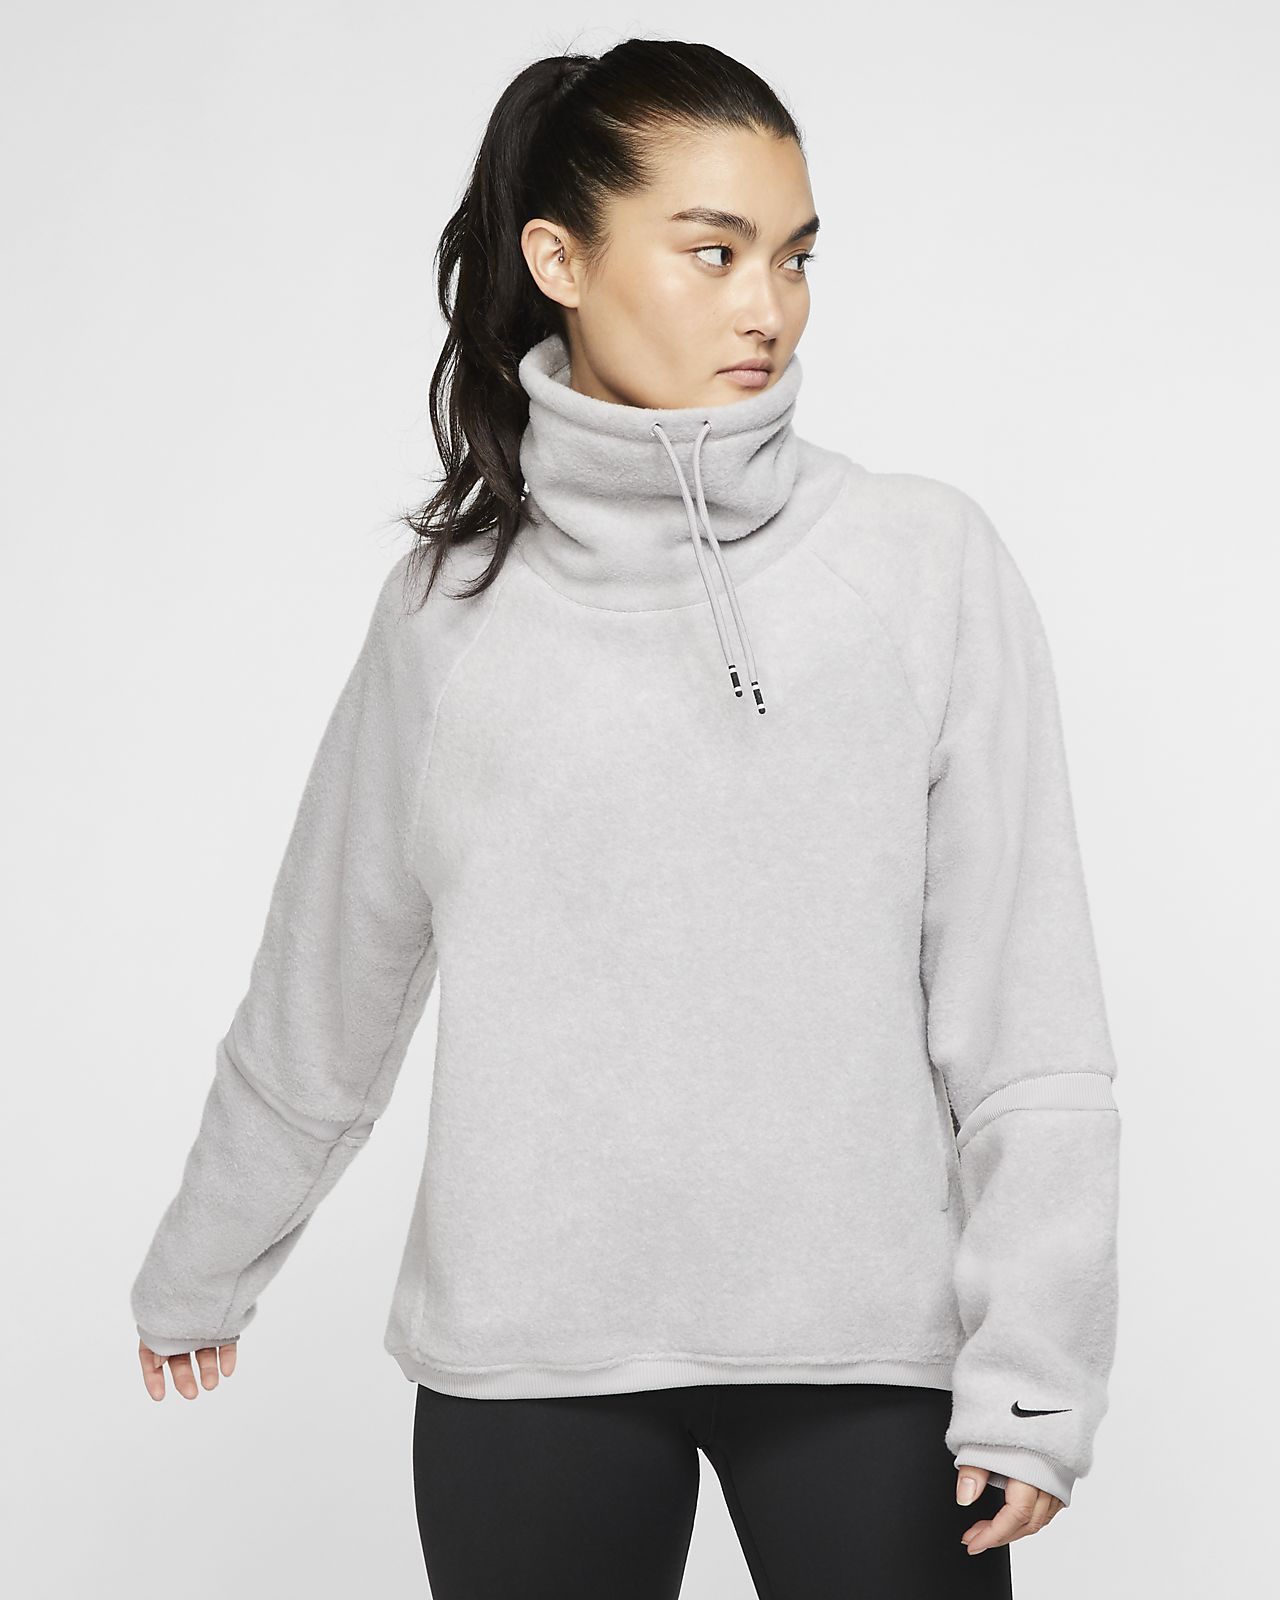 Nike Therma Women's Long-Sleeve Fleece Training Top